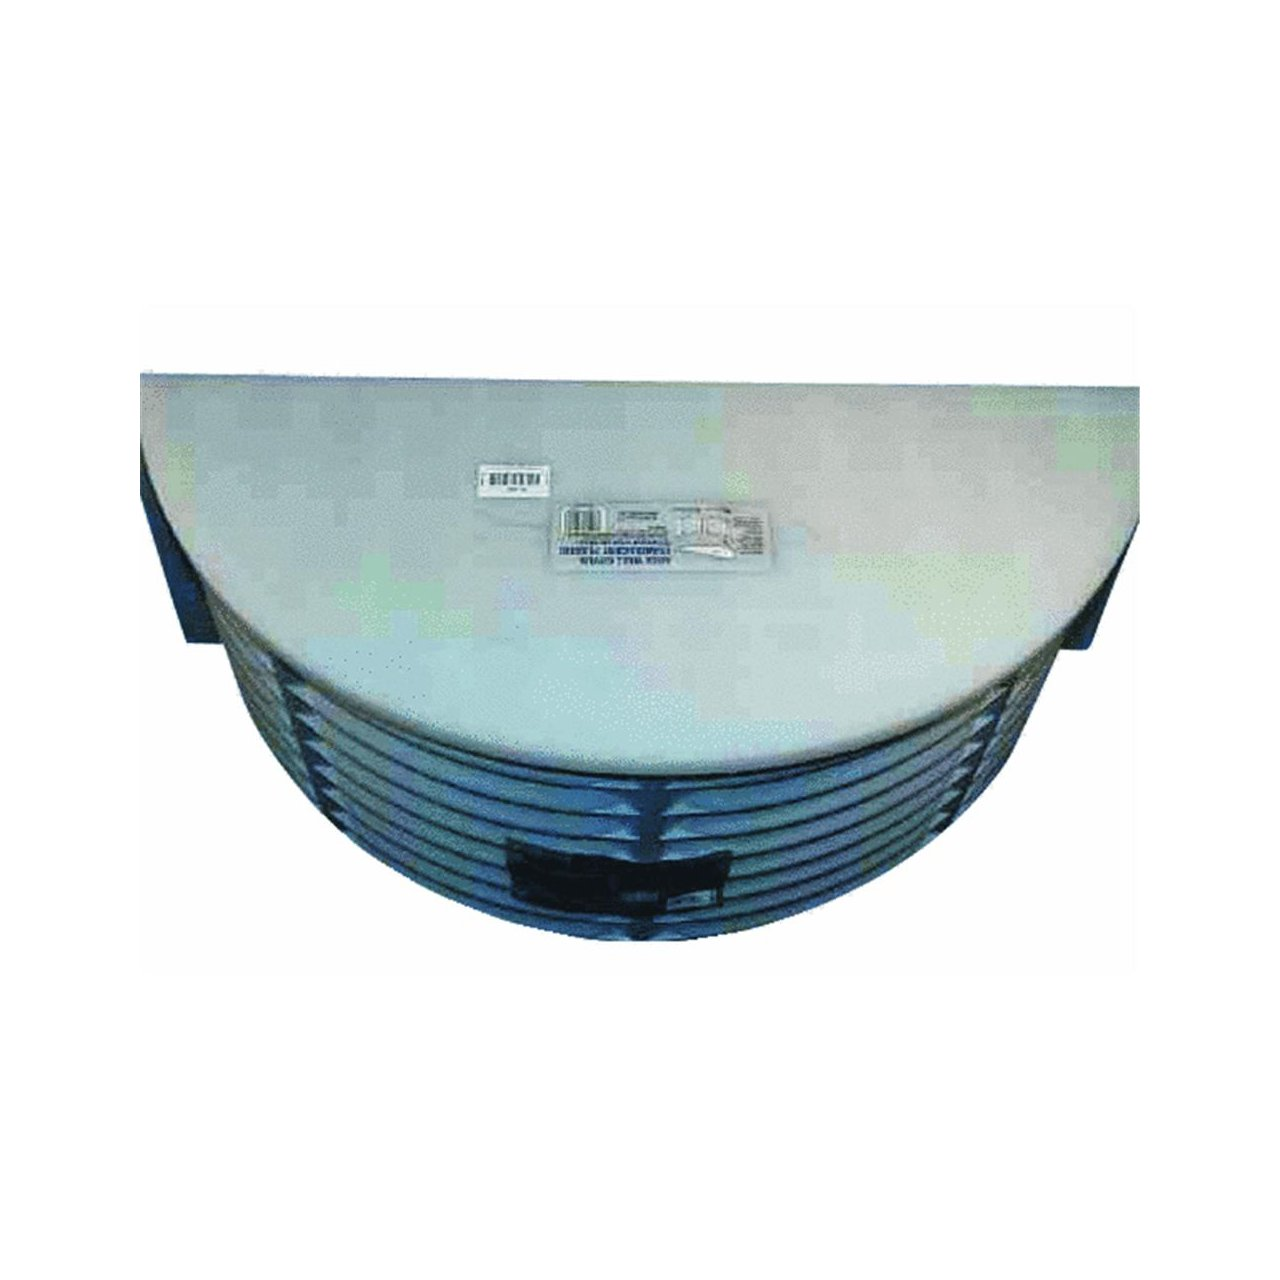 Amerimax Home Products 75260 Translucent Area Well Cover